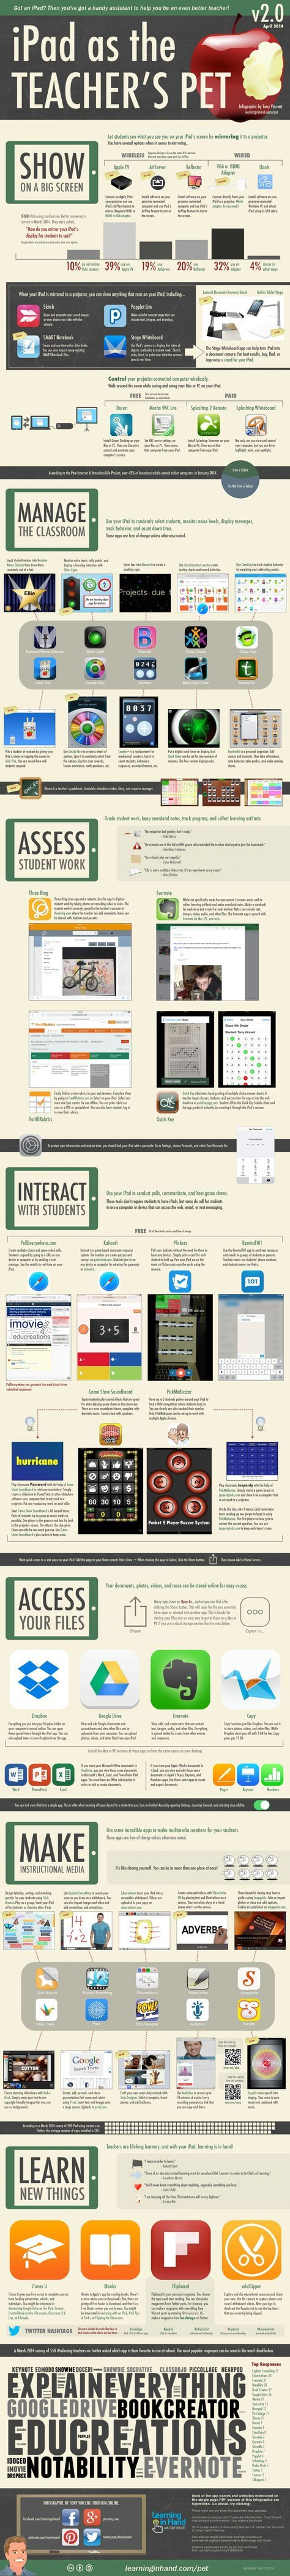 iPad as the Teacher's Pet Version 2.0 Infographic